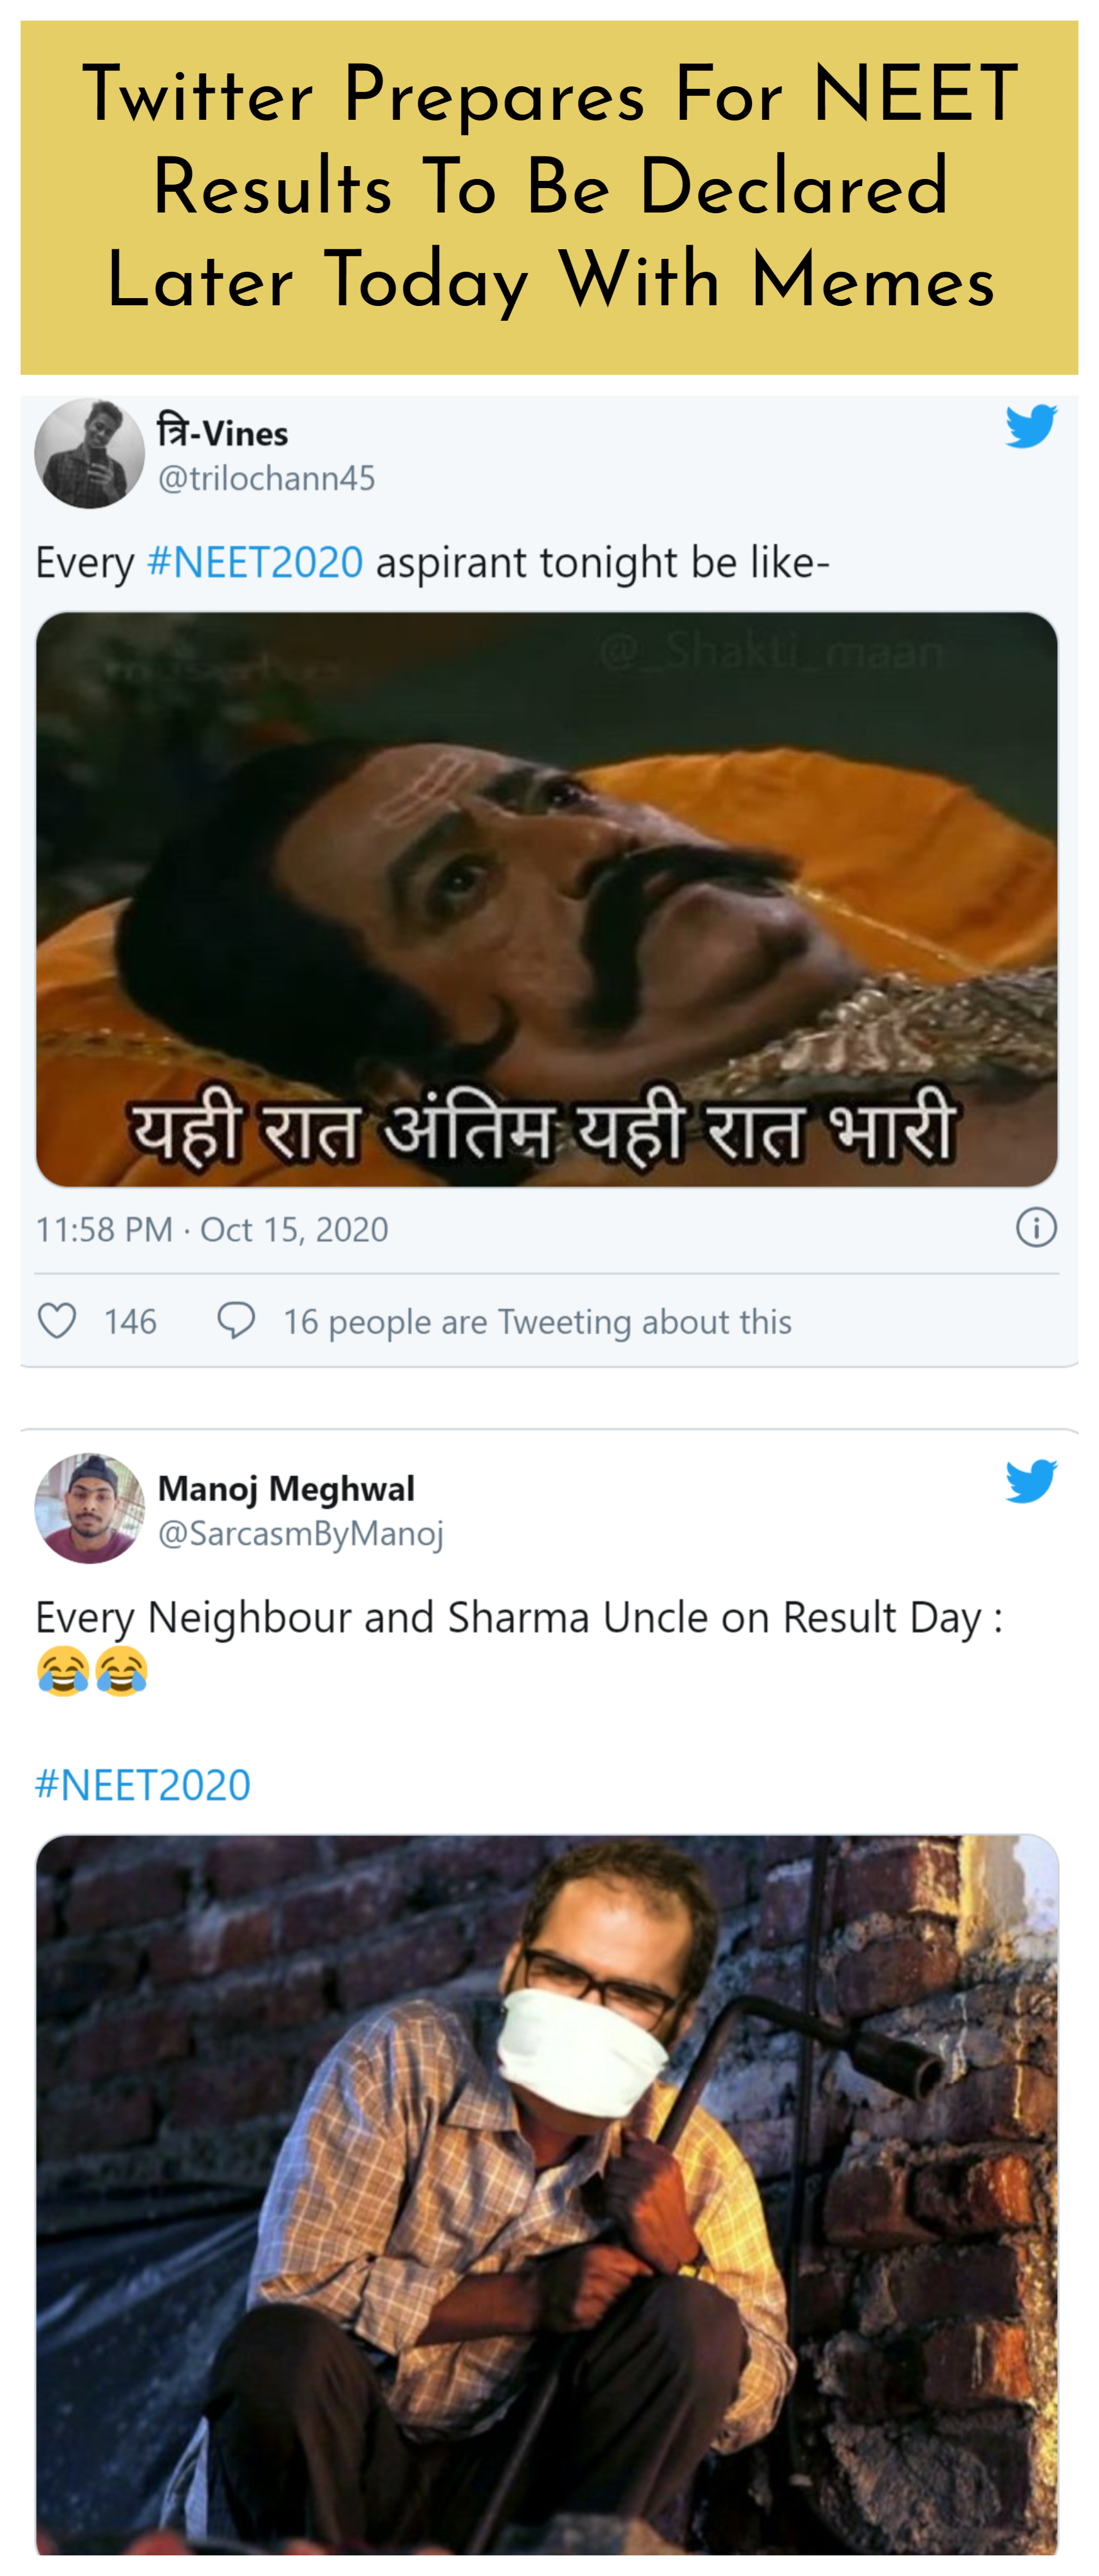 Twitter Prepares For Neet Results To Be Declared Later Today With Memes Memes Funny Memes The Funny